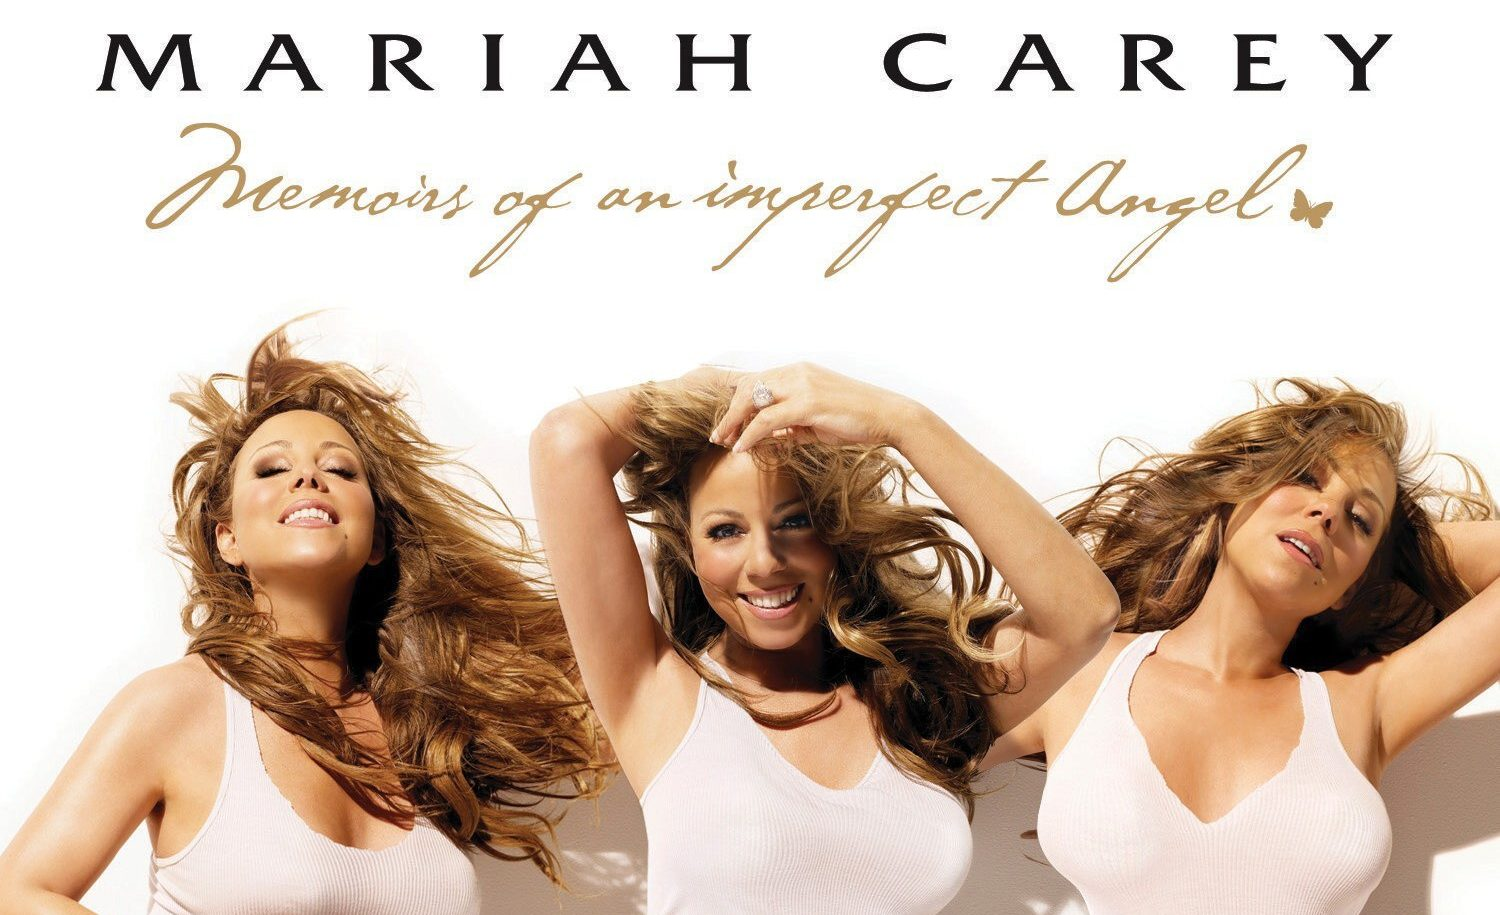 Top 5 From The Mariah Carey Memoirs Of An Imperfect Angel ...